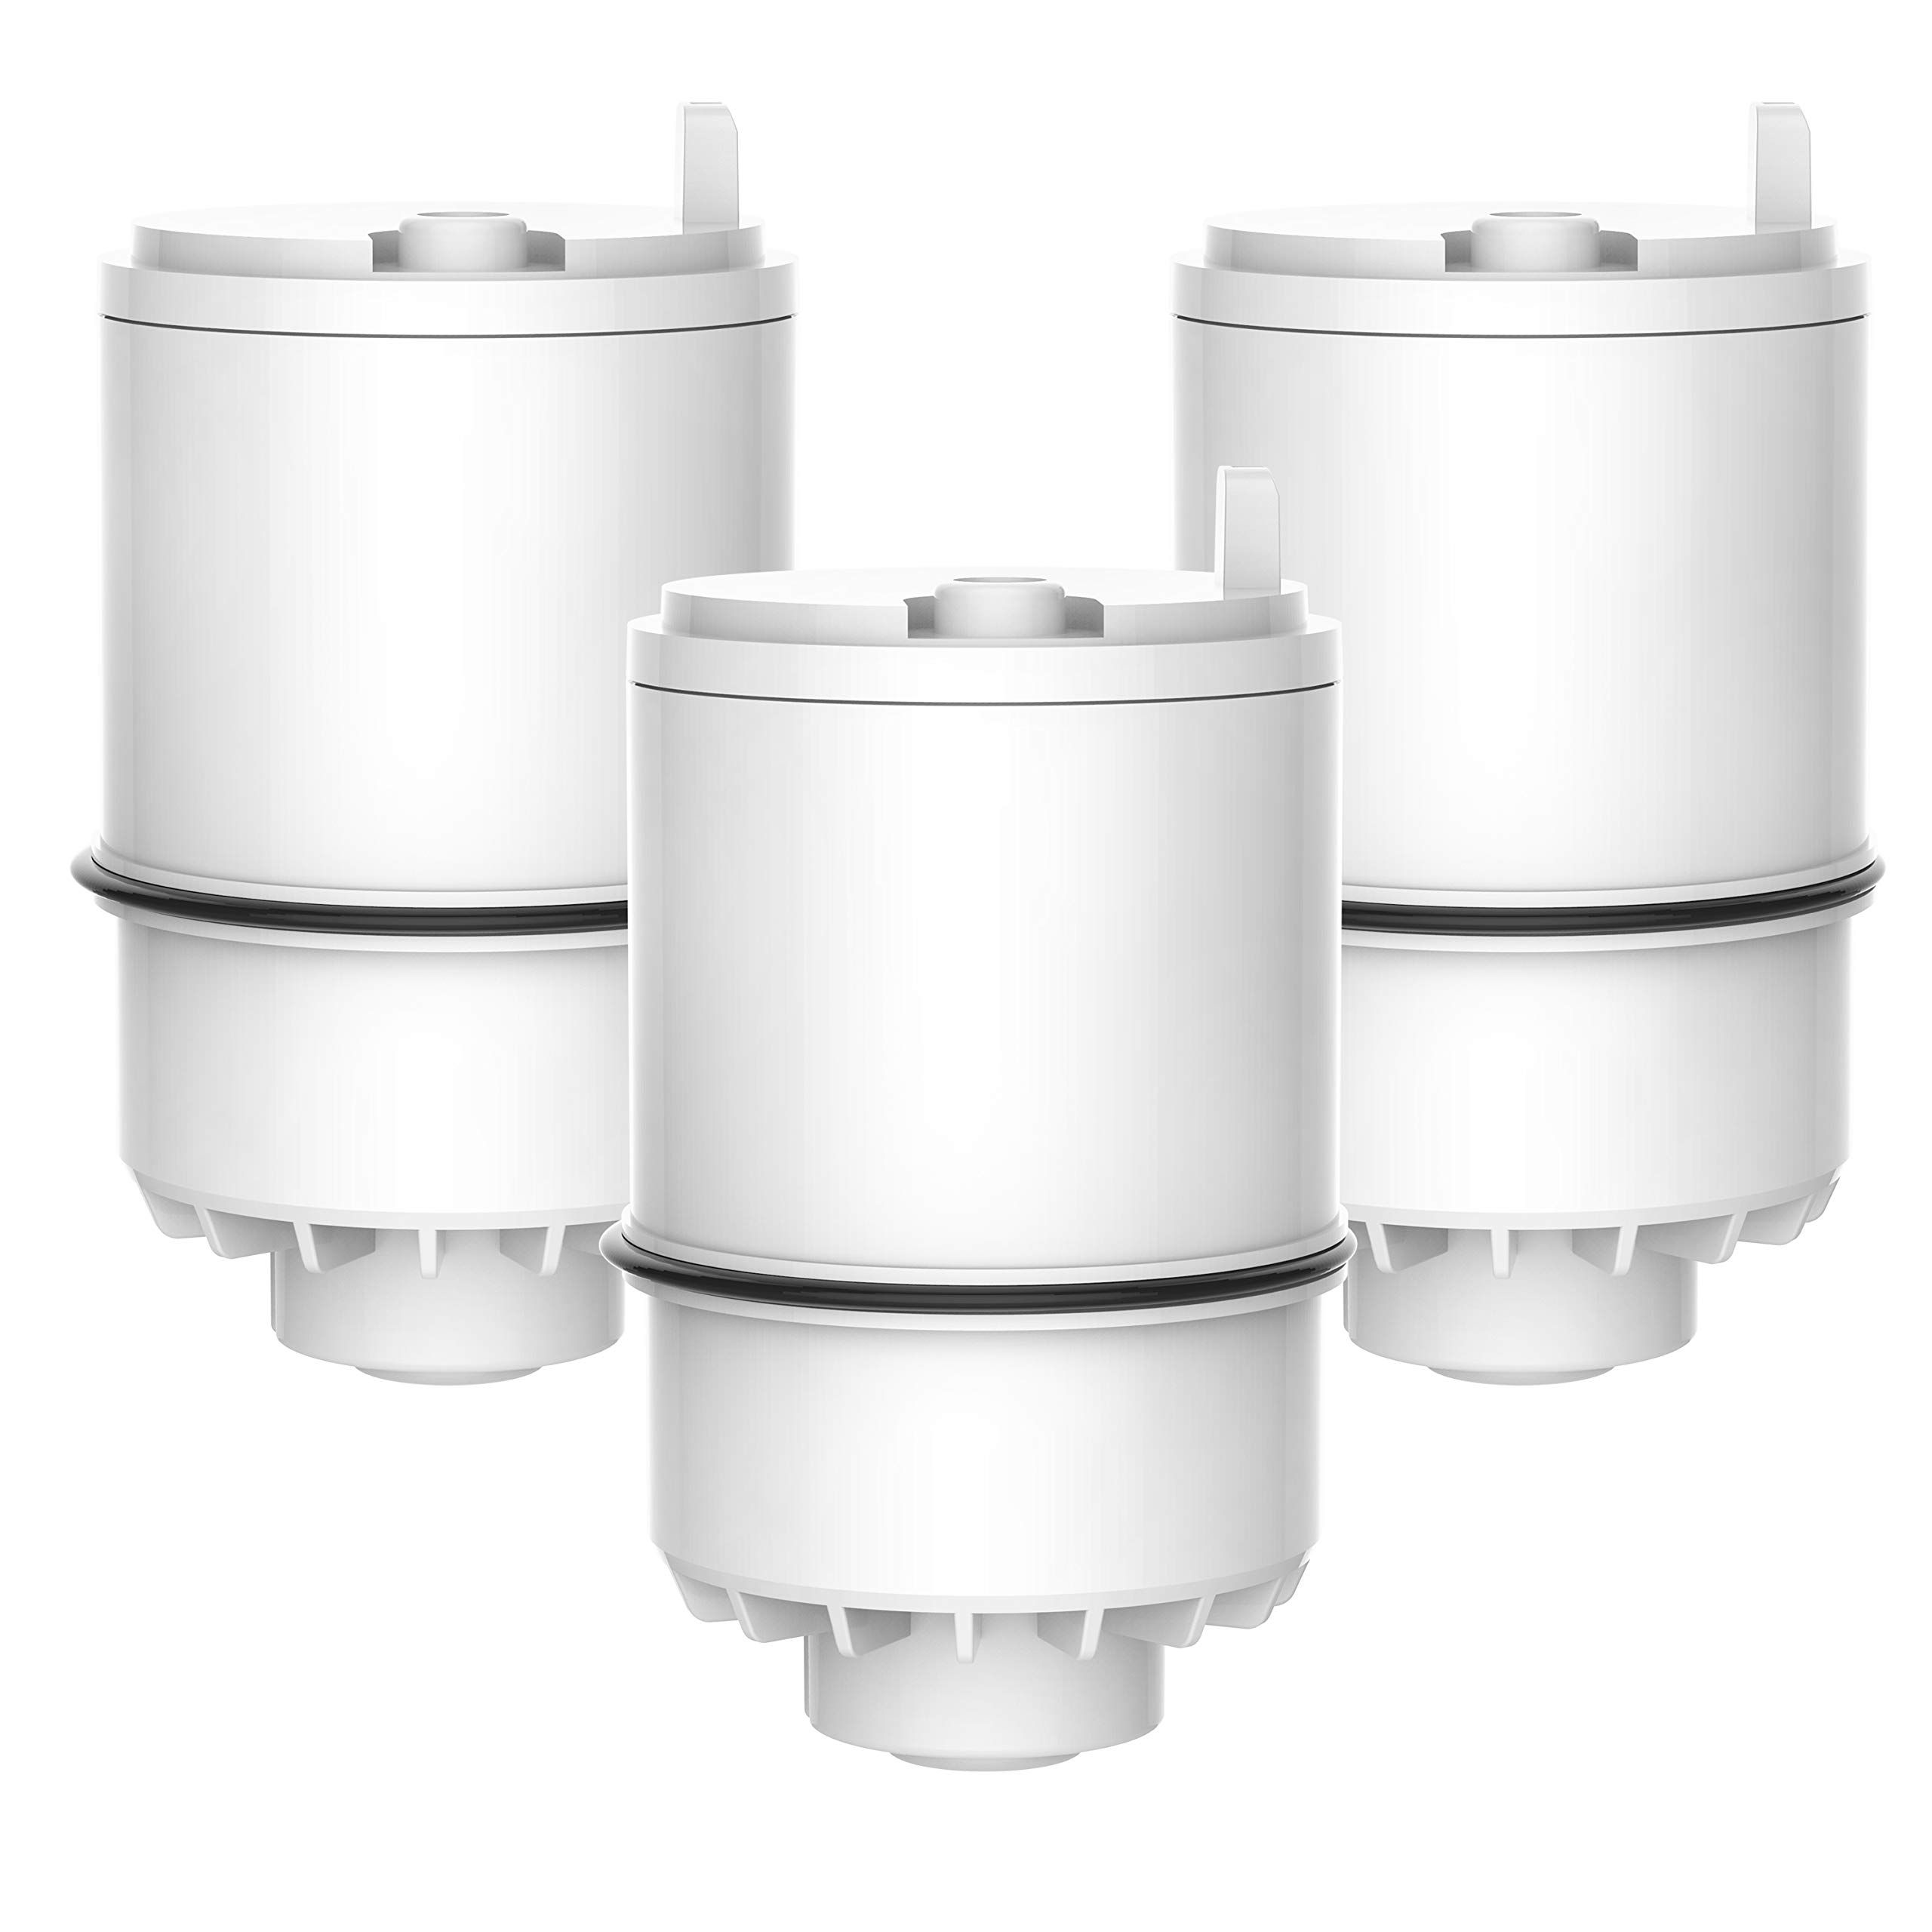 Waterdrop RF 3375 Water Filter, Compatible with Pur RF-3375 Faucet Water Filter (Pack of 3) by Waterdrop